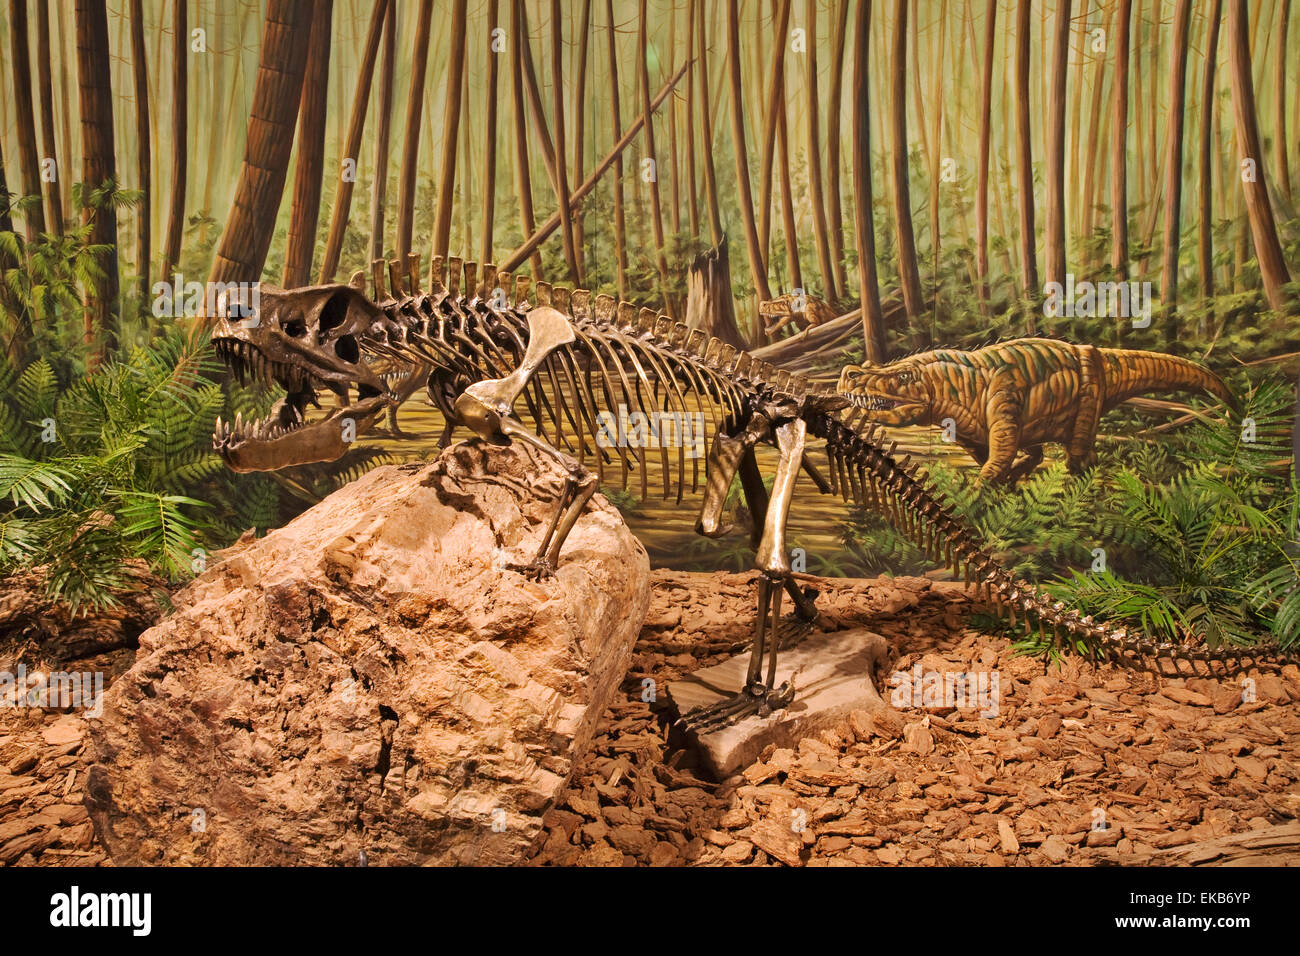 The skeleton of a Postucous,which was a creature from the late Triassic and hunted early dinosaurs among its prey - Stock Image